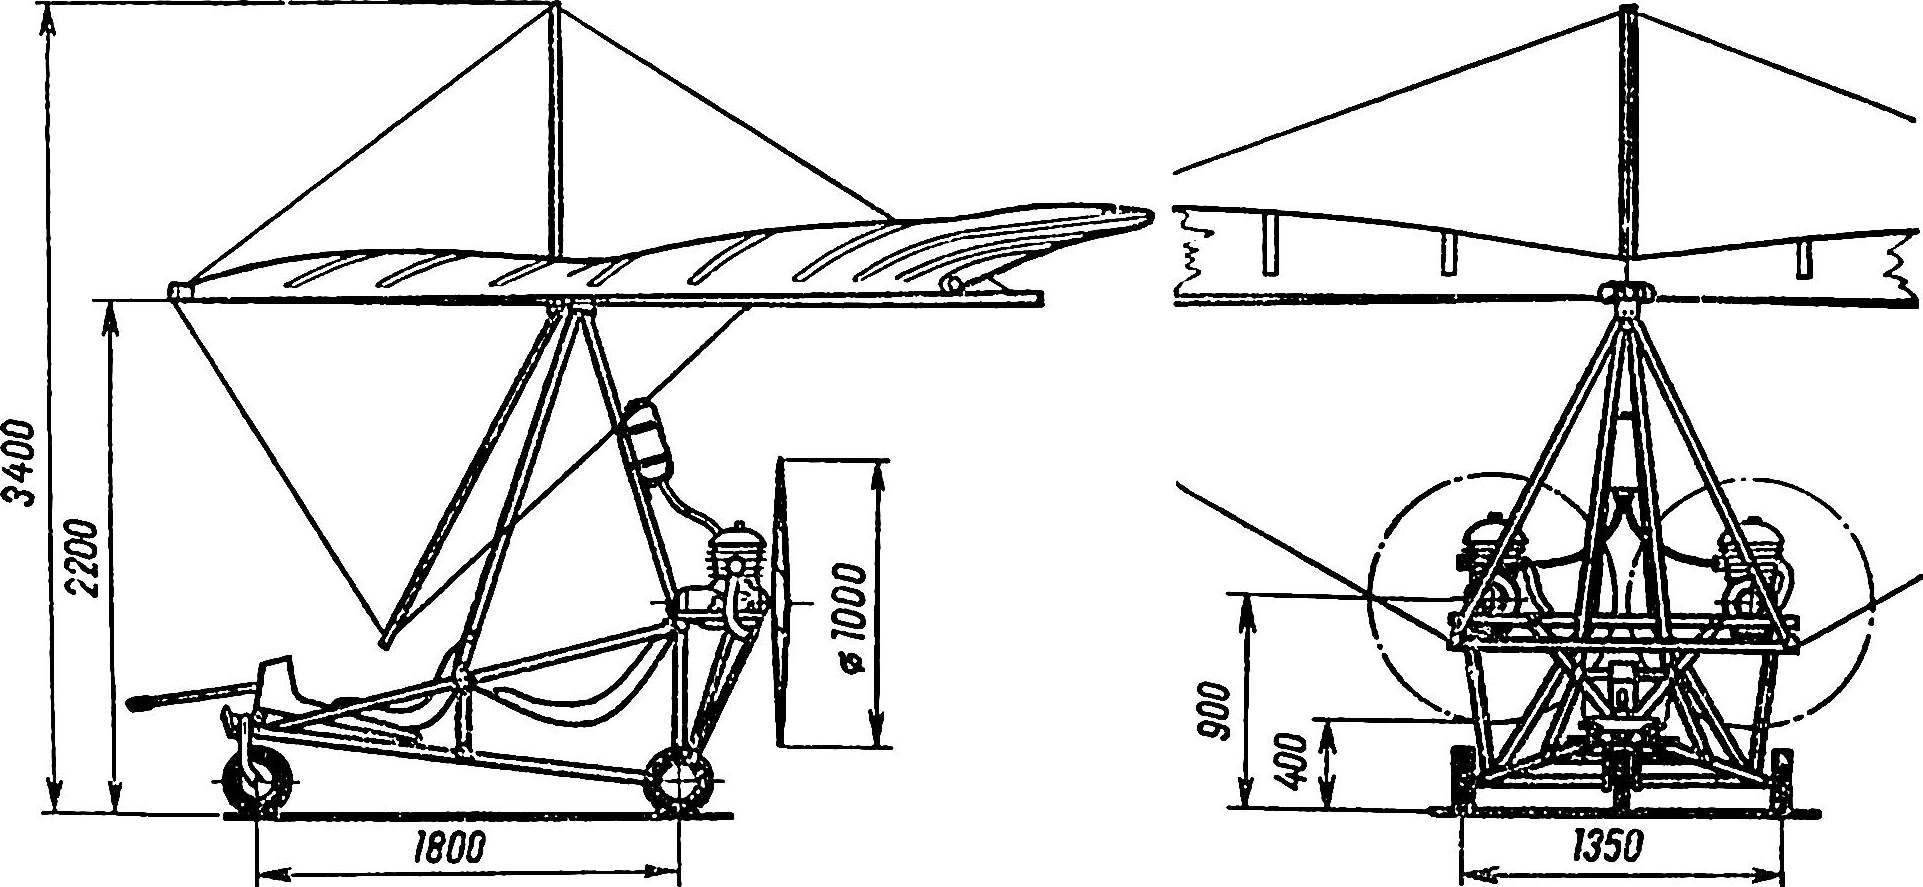 Fig. 6. Double pilot trikes from the trike truss